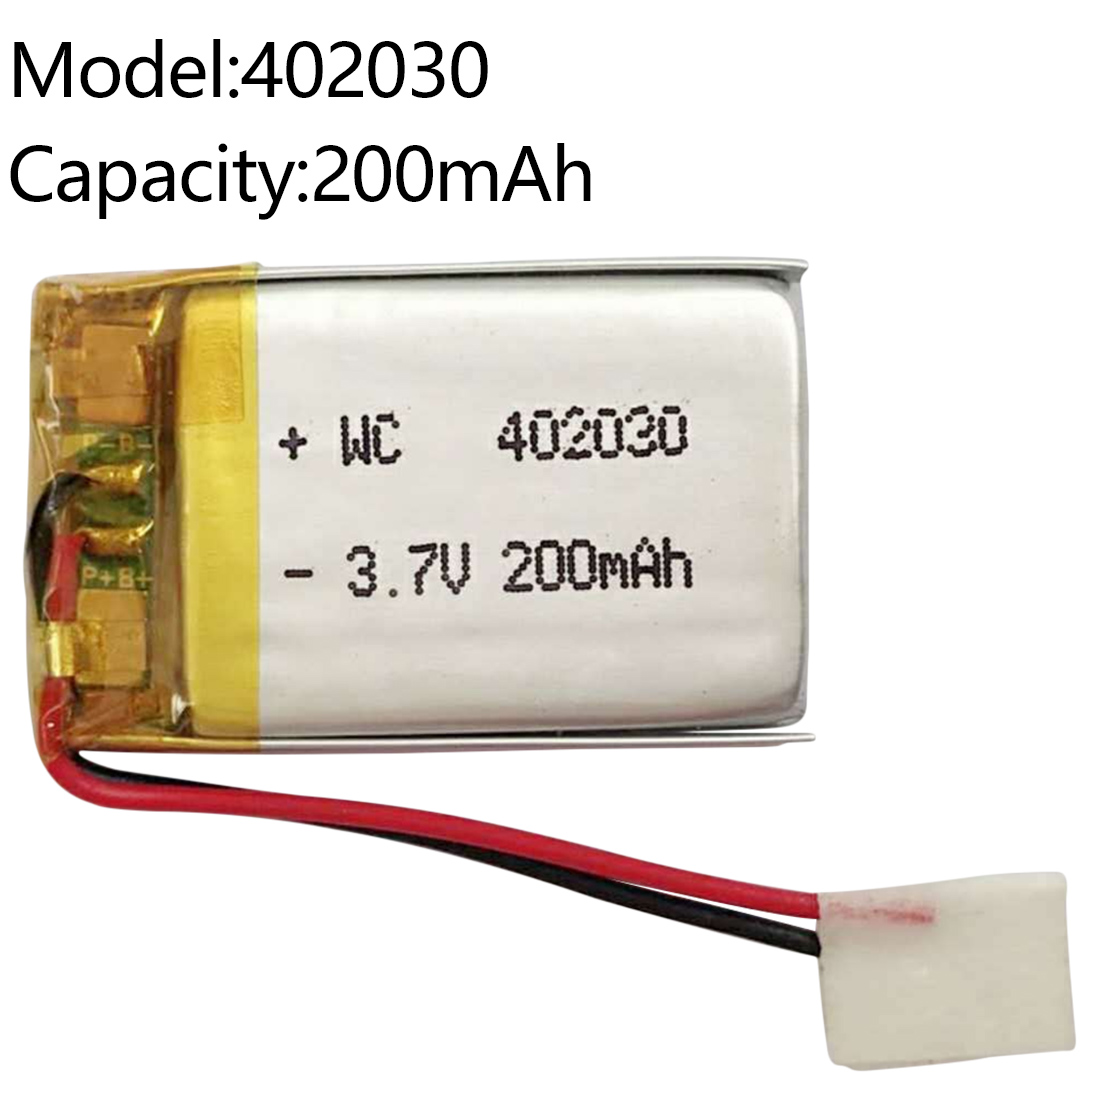 Polymer Lithium Rechargeable <font><b>Battery</b></font> 1000/200 mAh Li-ion <font><b>Battery</b></font> <font><b>3.7V</b></font> 543450 402030 for Smart Phone DVD MP3 MP4 Led Lamp image